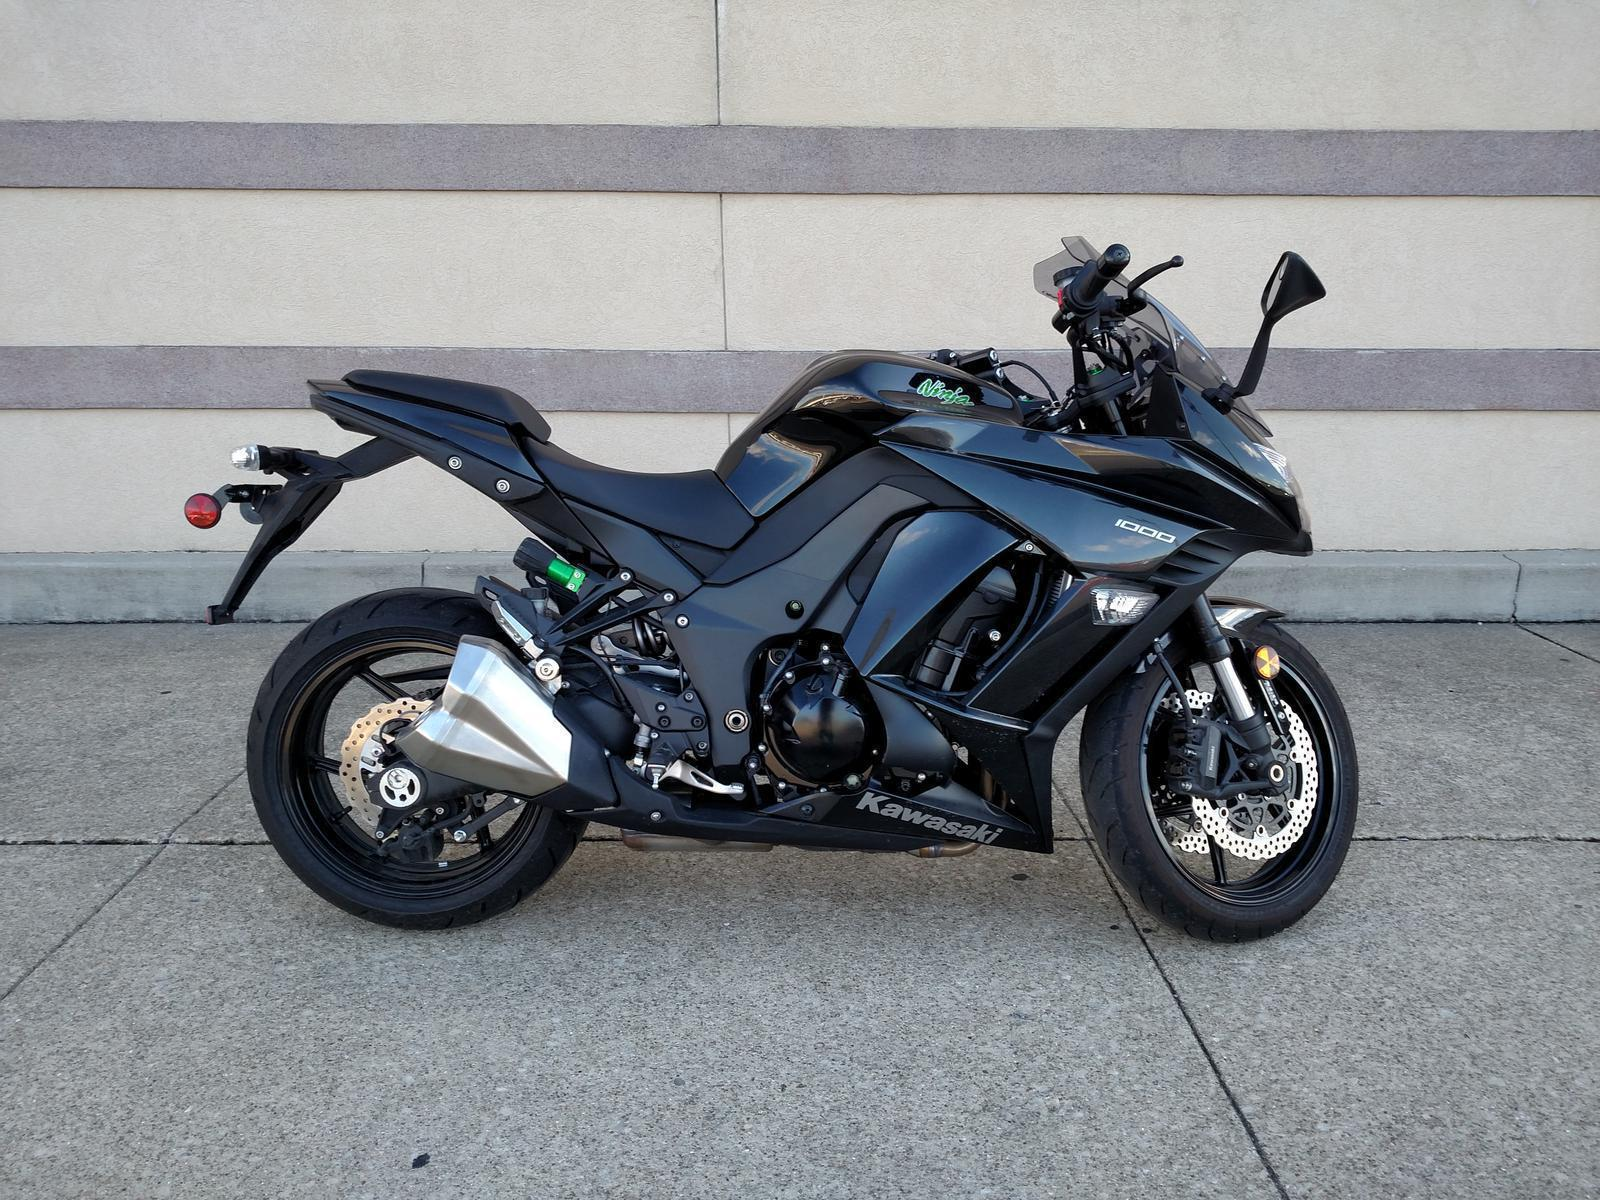 2015 Kawasaki Ninja 1000 Abs For Sale In Westerville Oh Pony Powersports Columbus Westerville Oh 614 212 7888